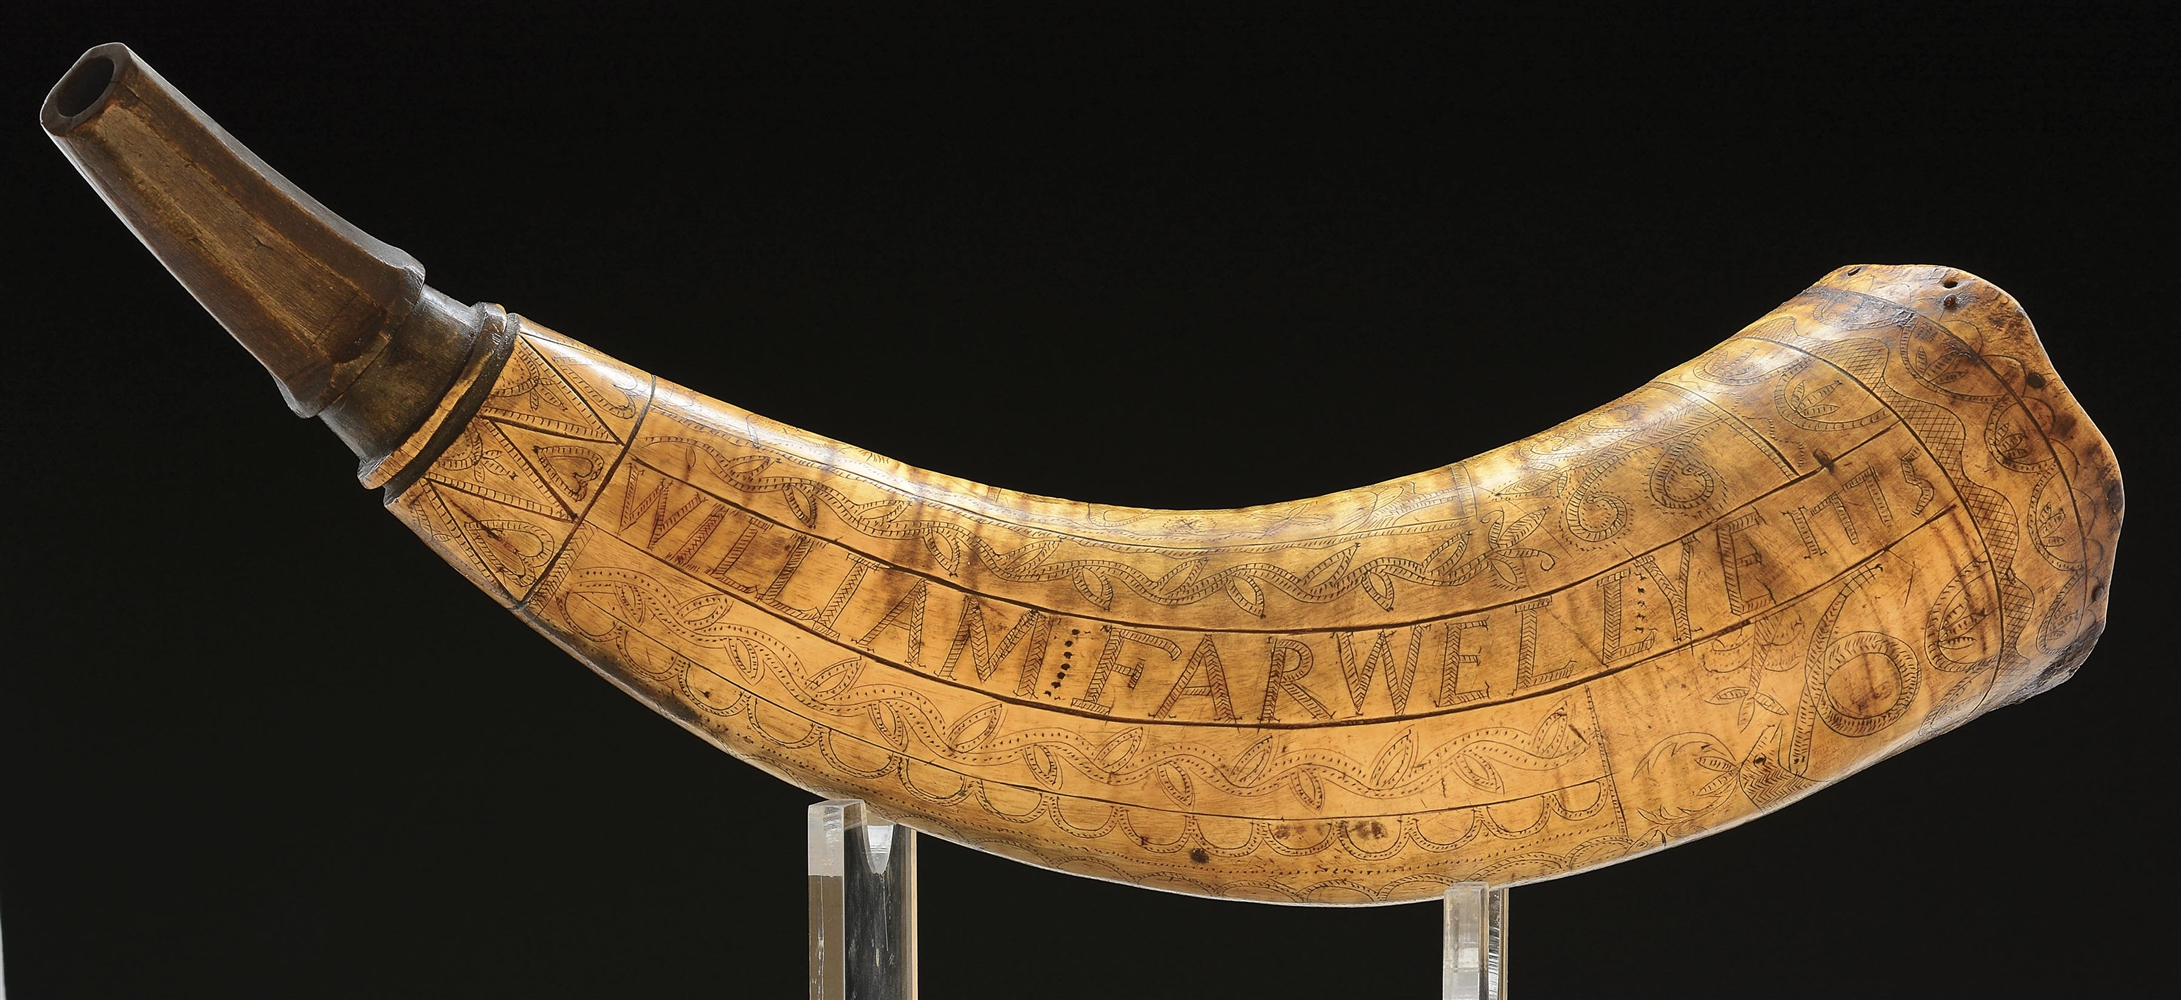 ENGRAVED POWDER HORN OF WILLIAM FARWELL, DATED 1775.